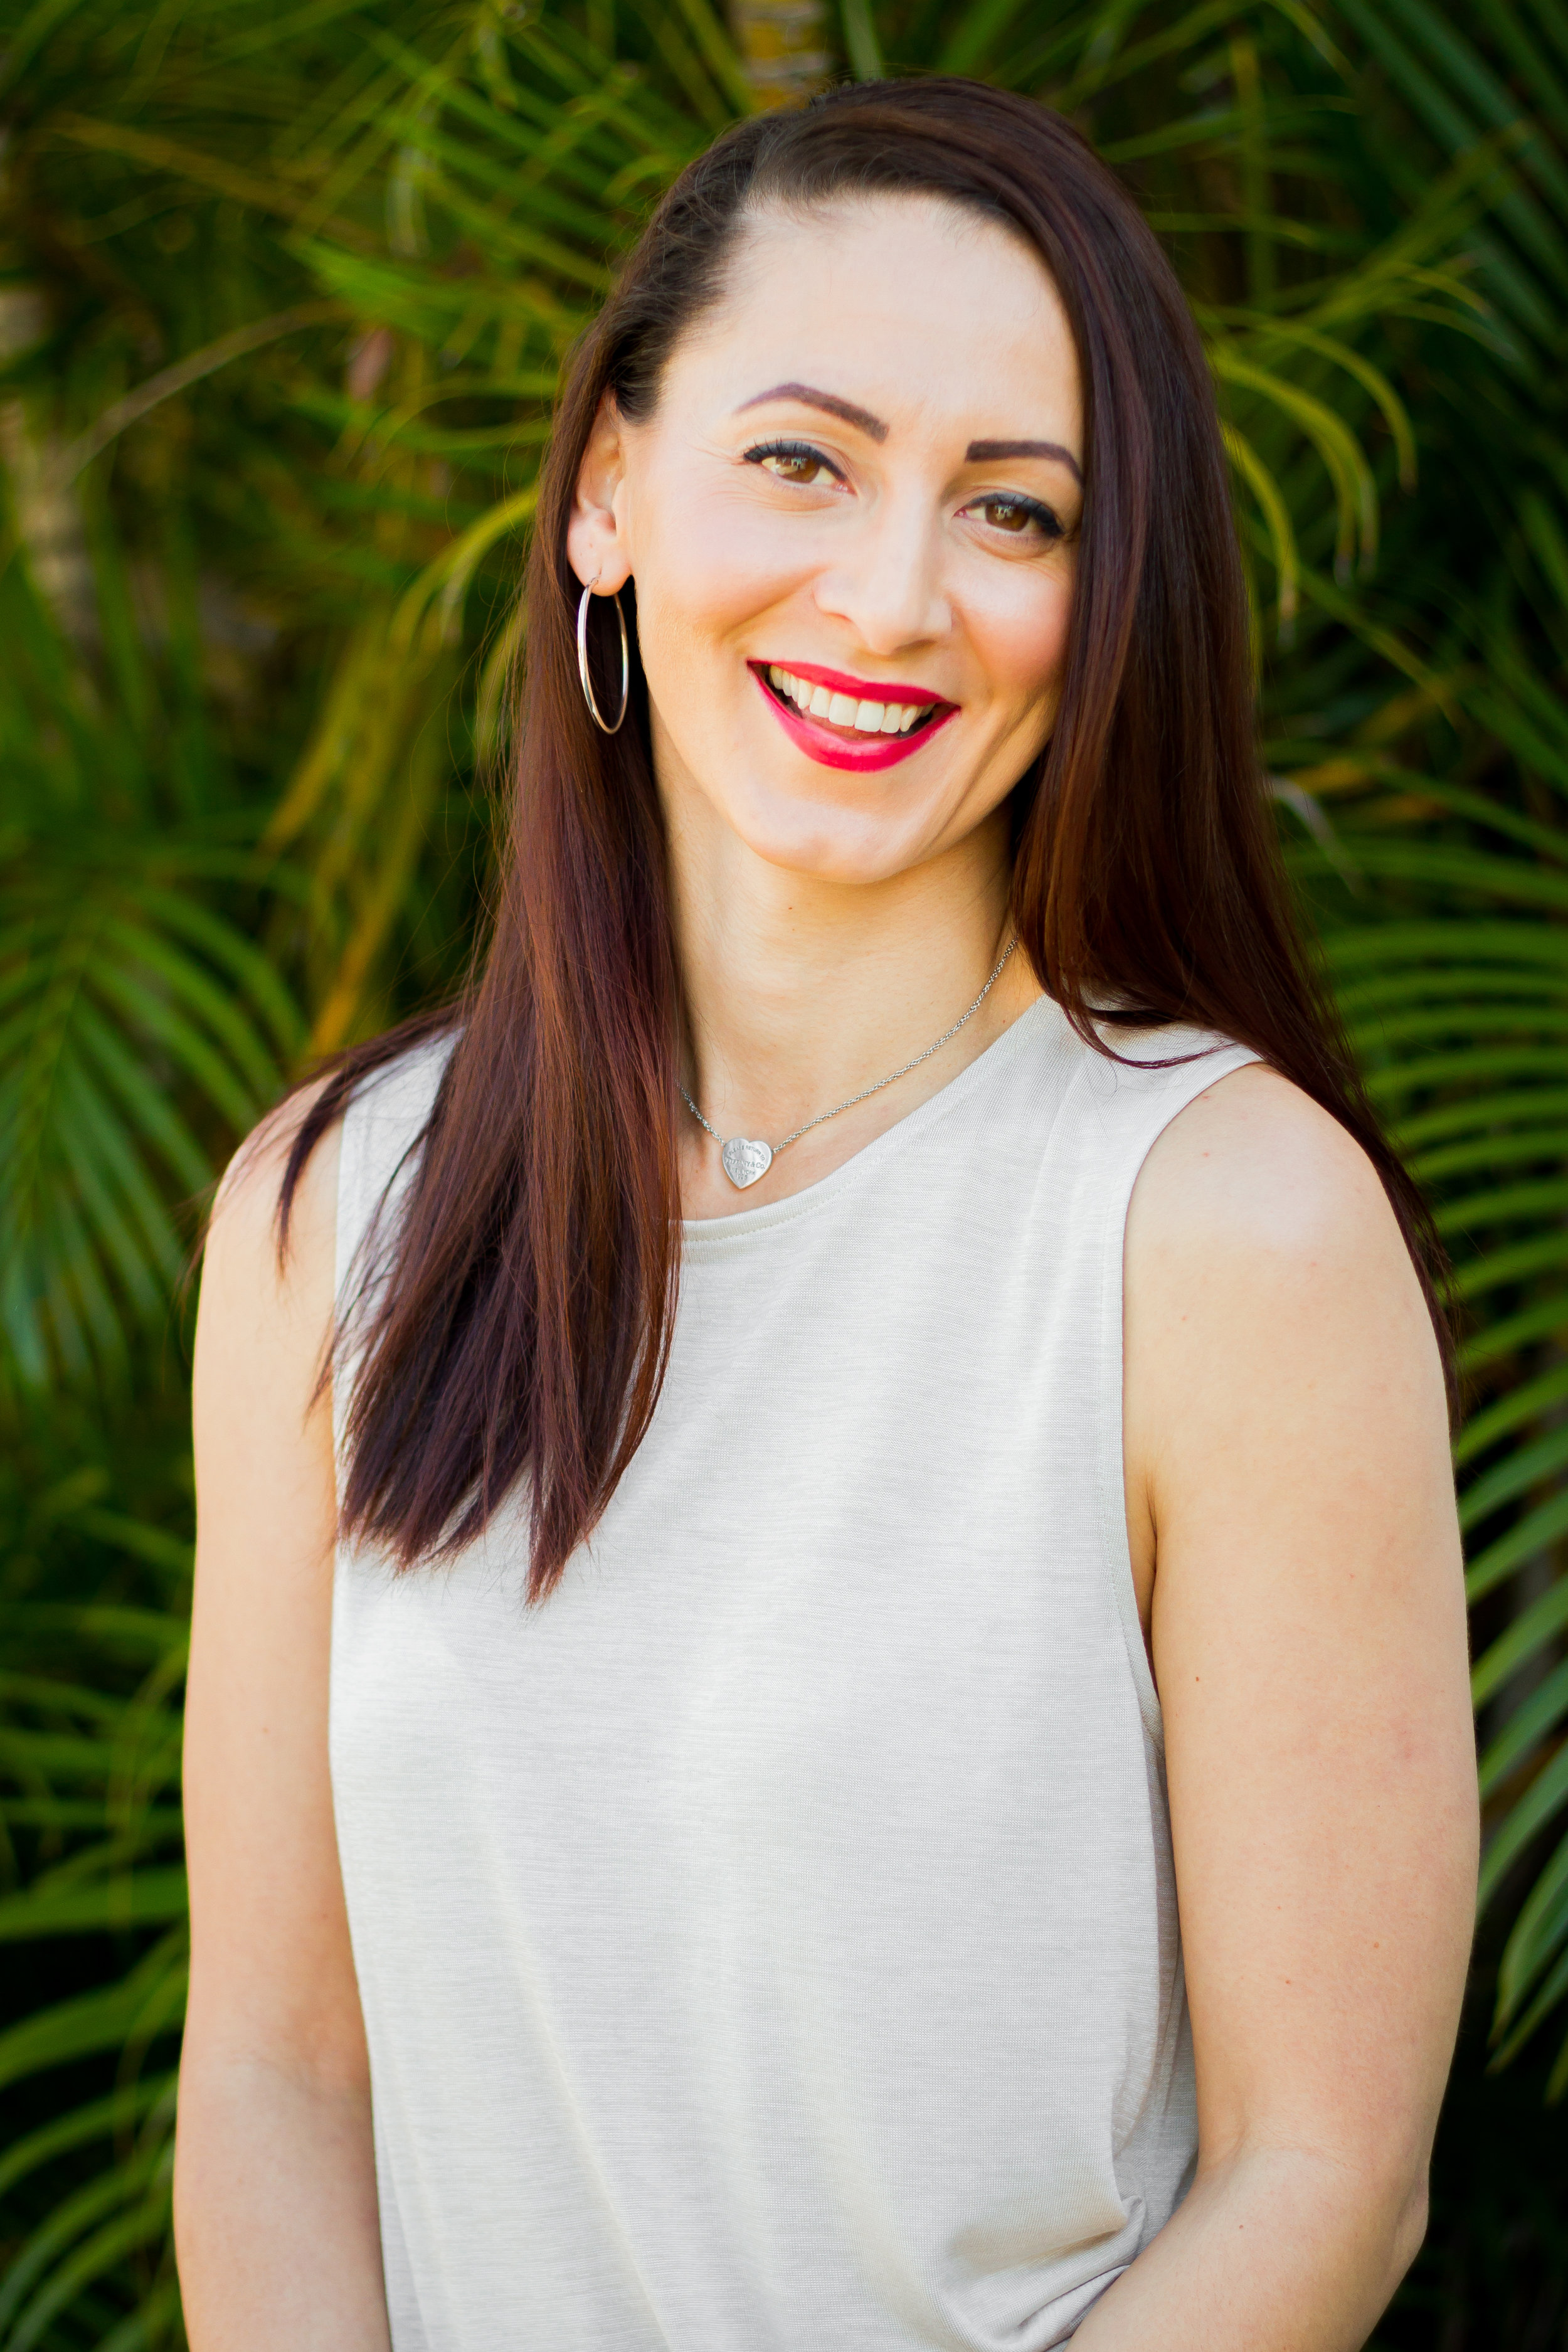 - Zsuzsanna is a passionate naturopath with over 15 years' industry experience.Having come from a corporate background herself, Zsuzsanna understands the demands of the busy, modern world we live in, and is particularly passionate about helping busy people prevent burn out, and achieve their best health possible.Zsuzsanna also has a special interest in mental health and uses functional pathology testing, together with nutritional and herbal therapies, to provide holistic, mental health solutions.Consultations are available in Nundah or online.Drop me an email here to see how I can help you achieve YOUR health goals.